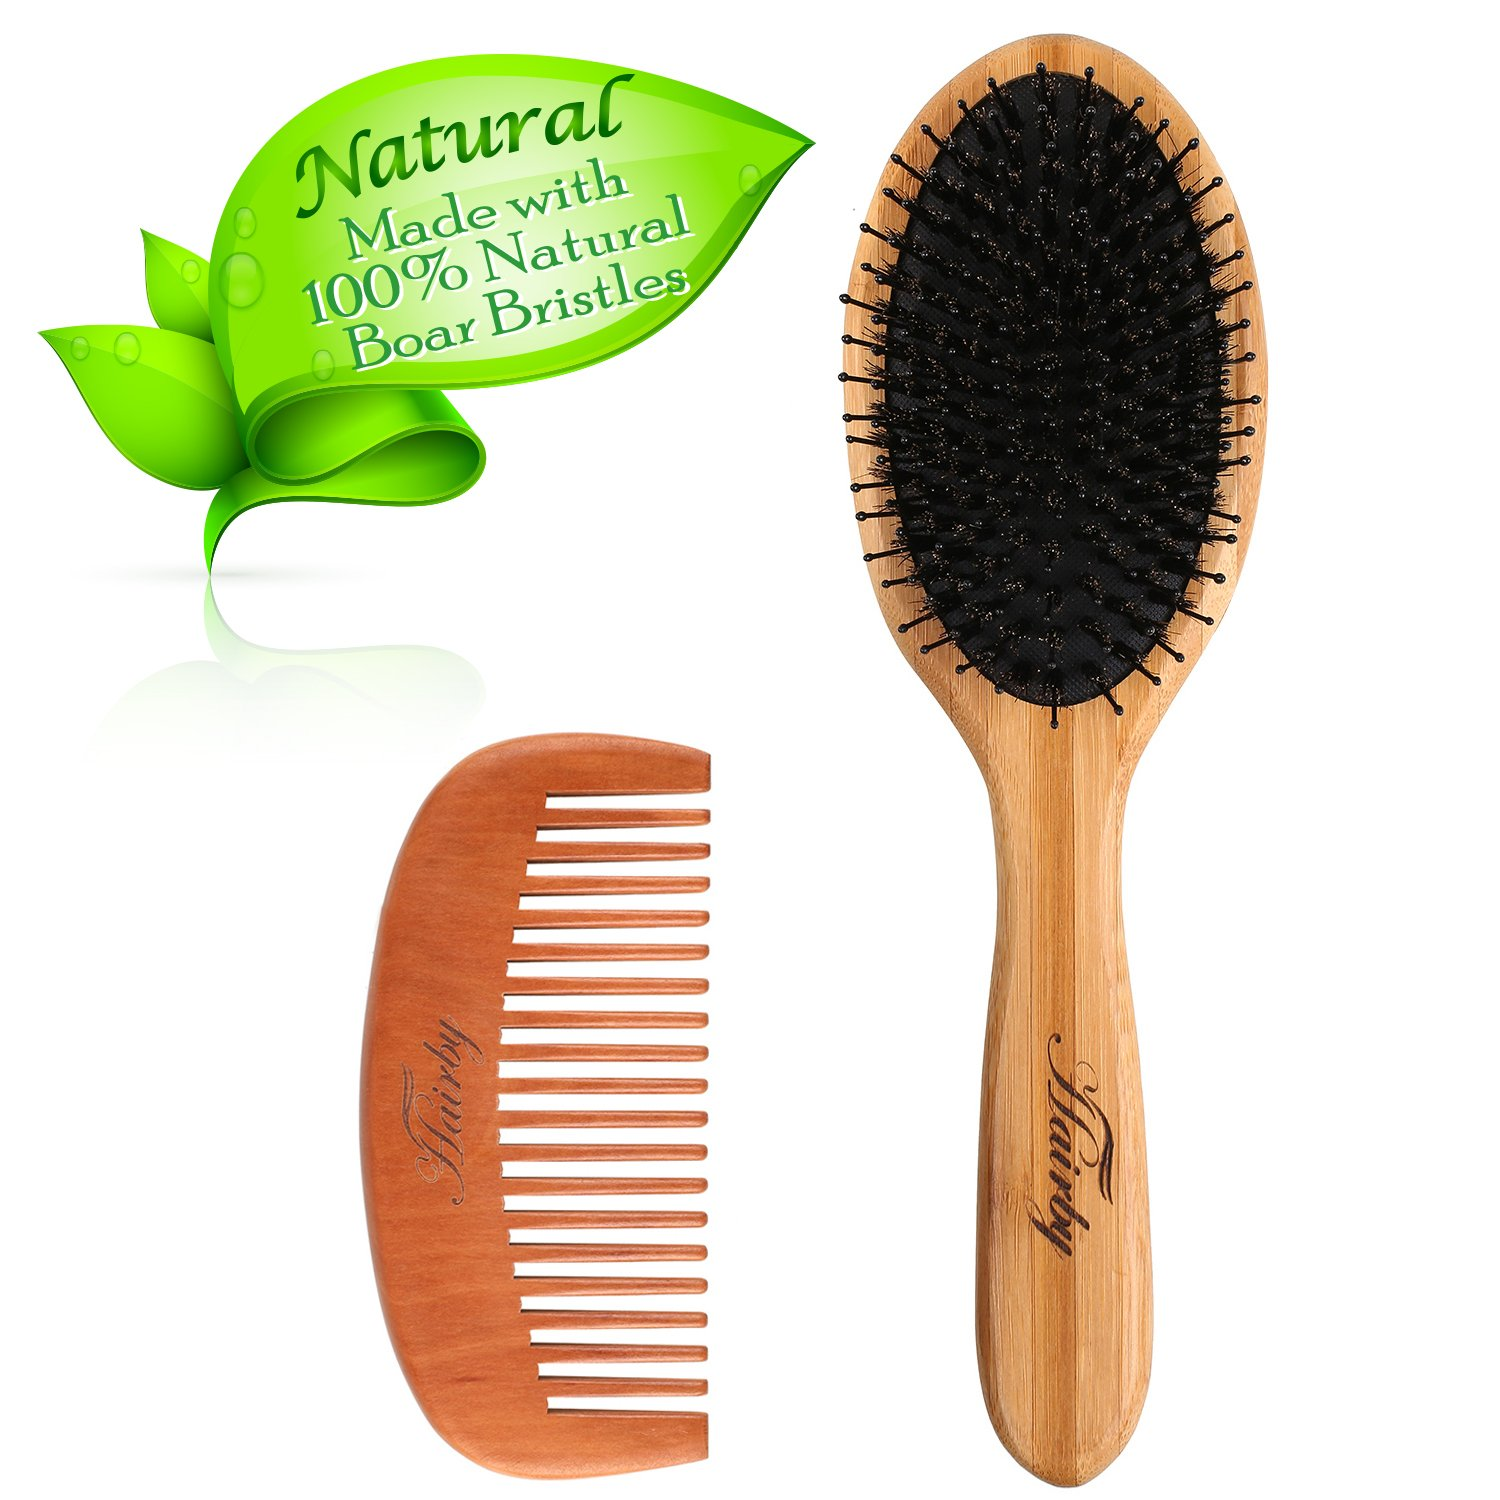 Hair Brush Set, Boar Bristle Hair Brush Wooden Hair Comb for Curly Hair and Normal Hair, Designed for Women and Men